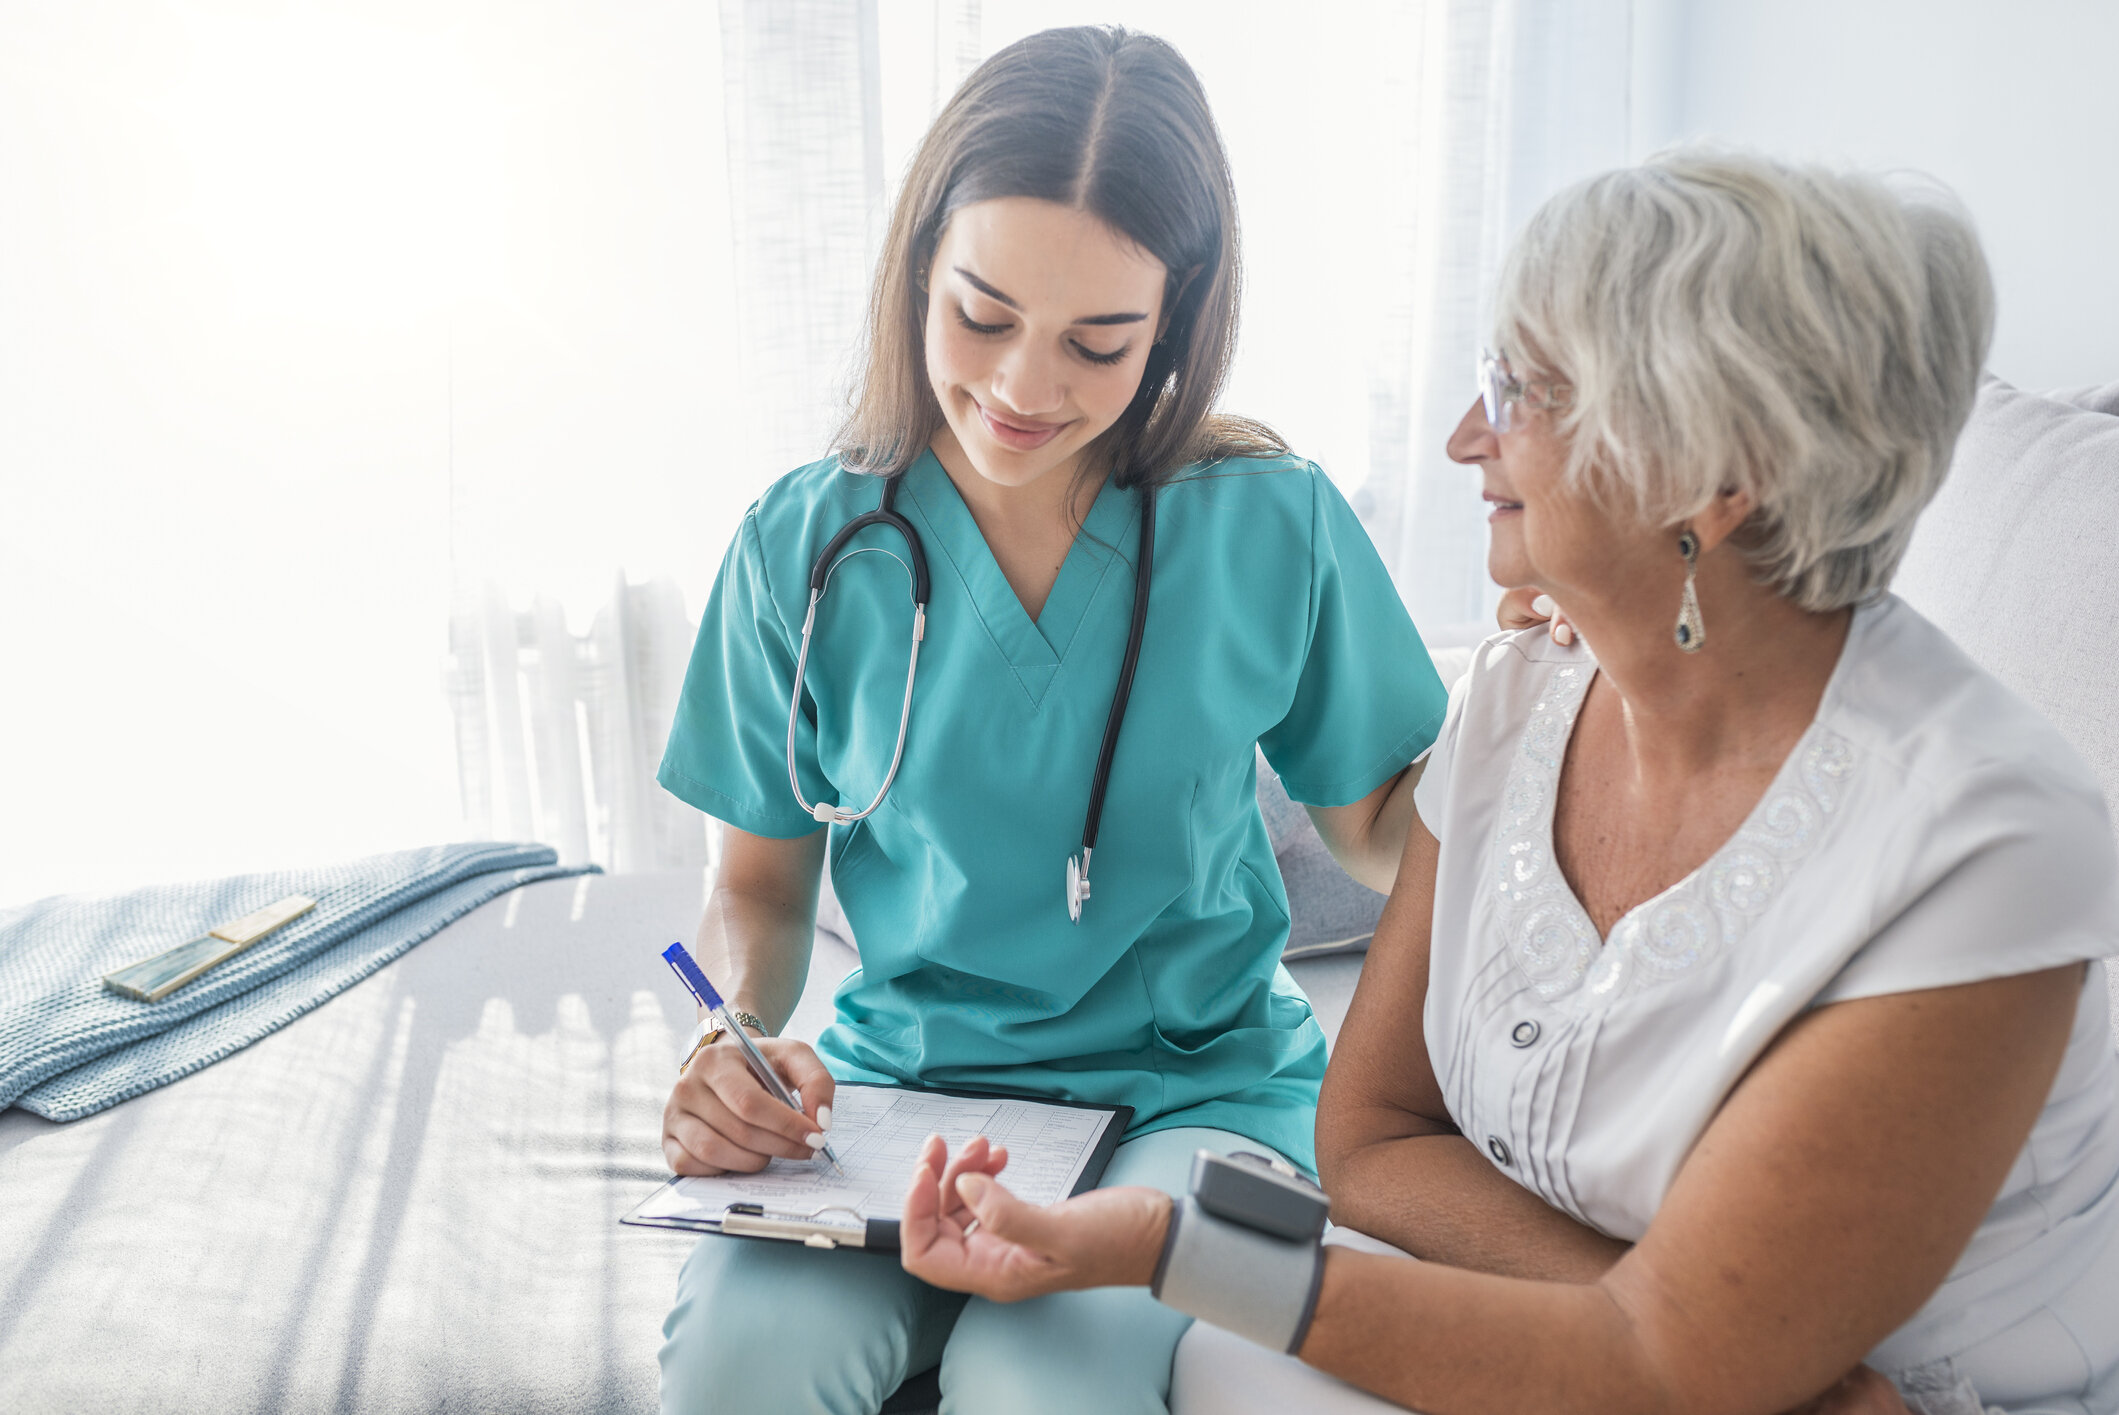 Our Mission - Nurses are at the heart of healthcare. Our mission is simple: to serve Nurses by helping them bridge the gap between conventional and integrative medicine, empower as healers and encourage in self care.Join Our Mission